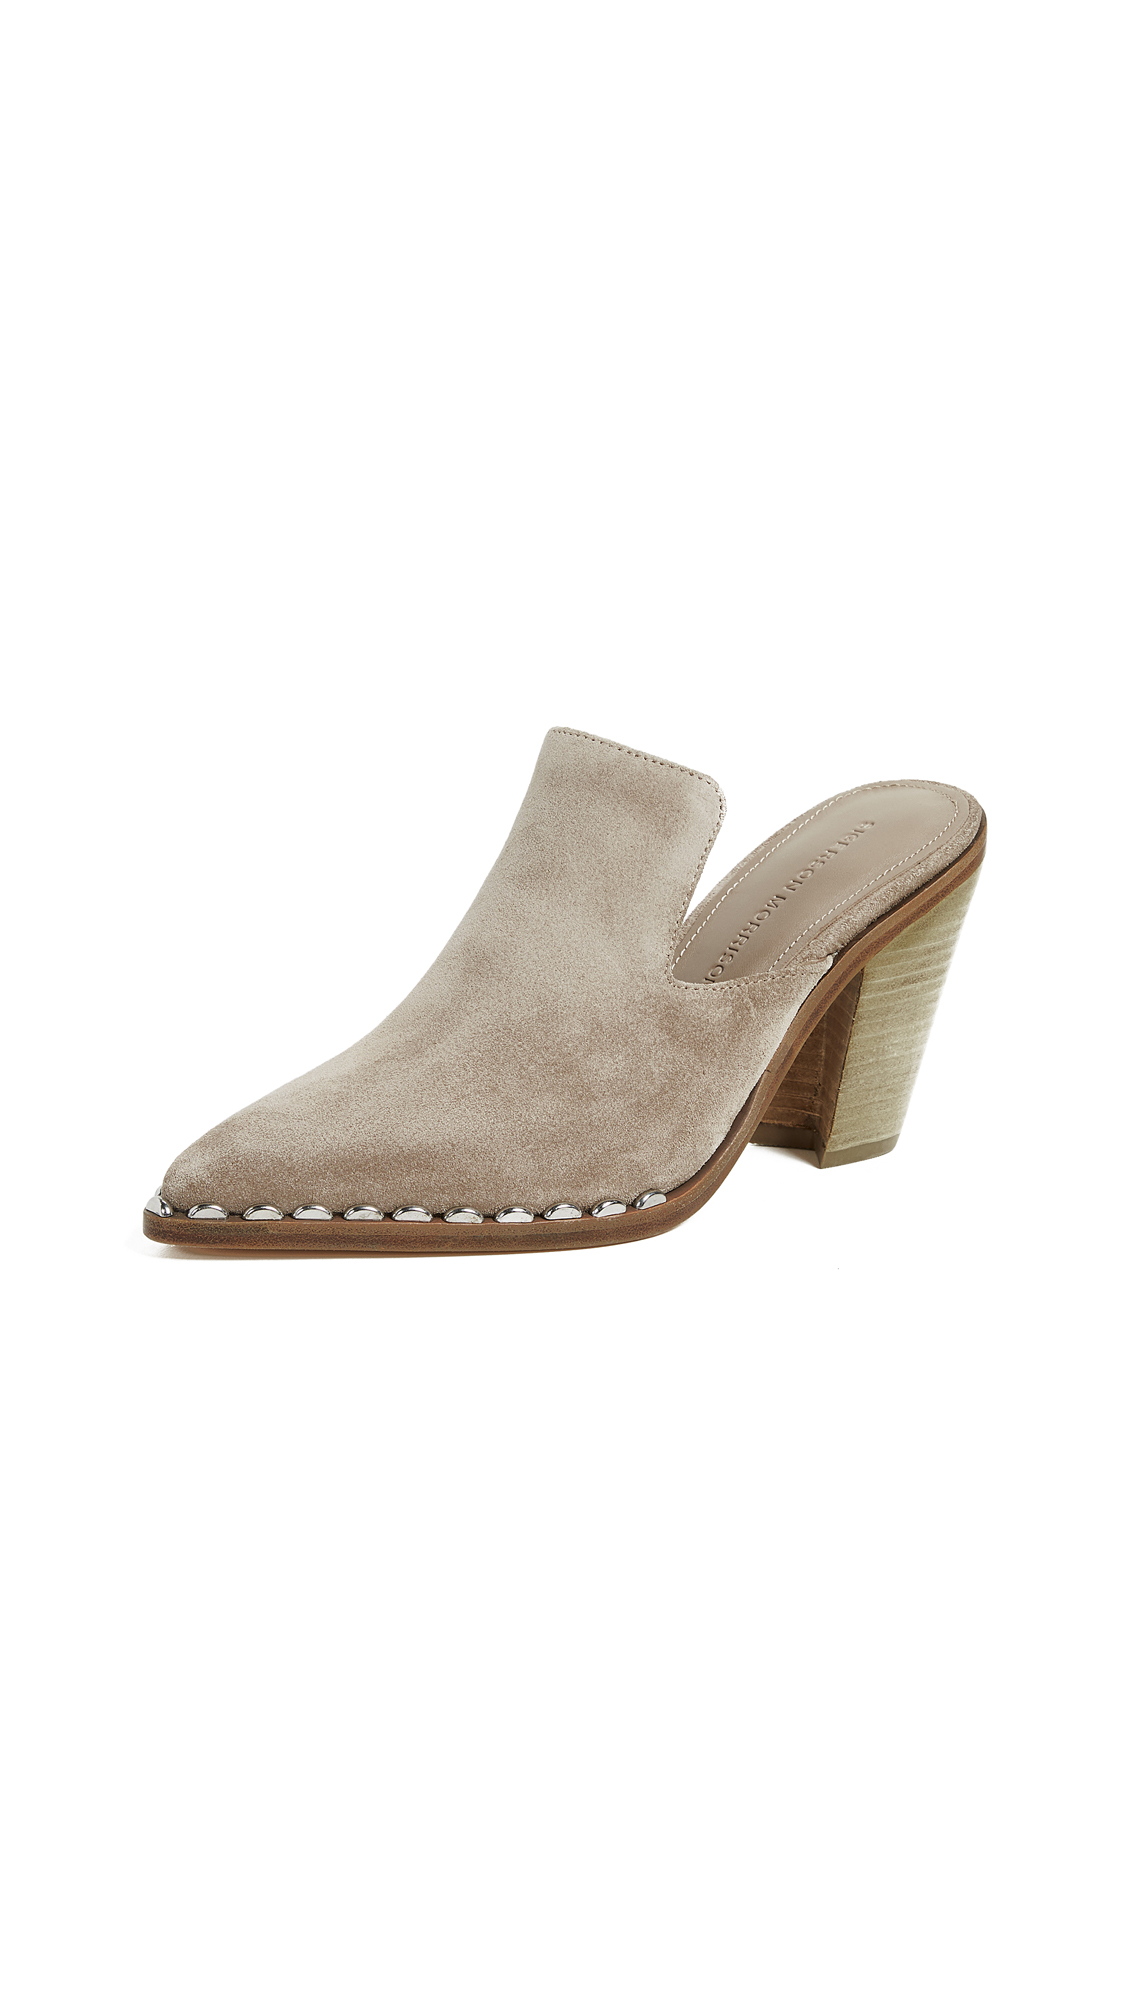 Sigerson Morrison Kacey Point Toe Mules - Cloud